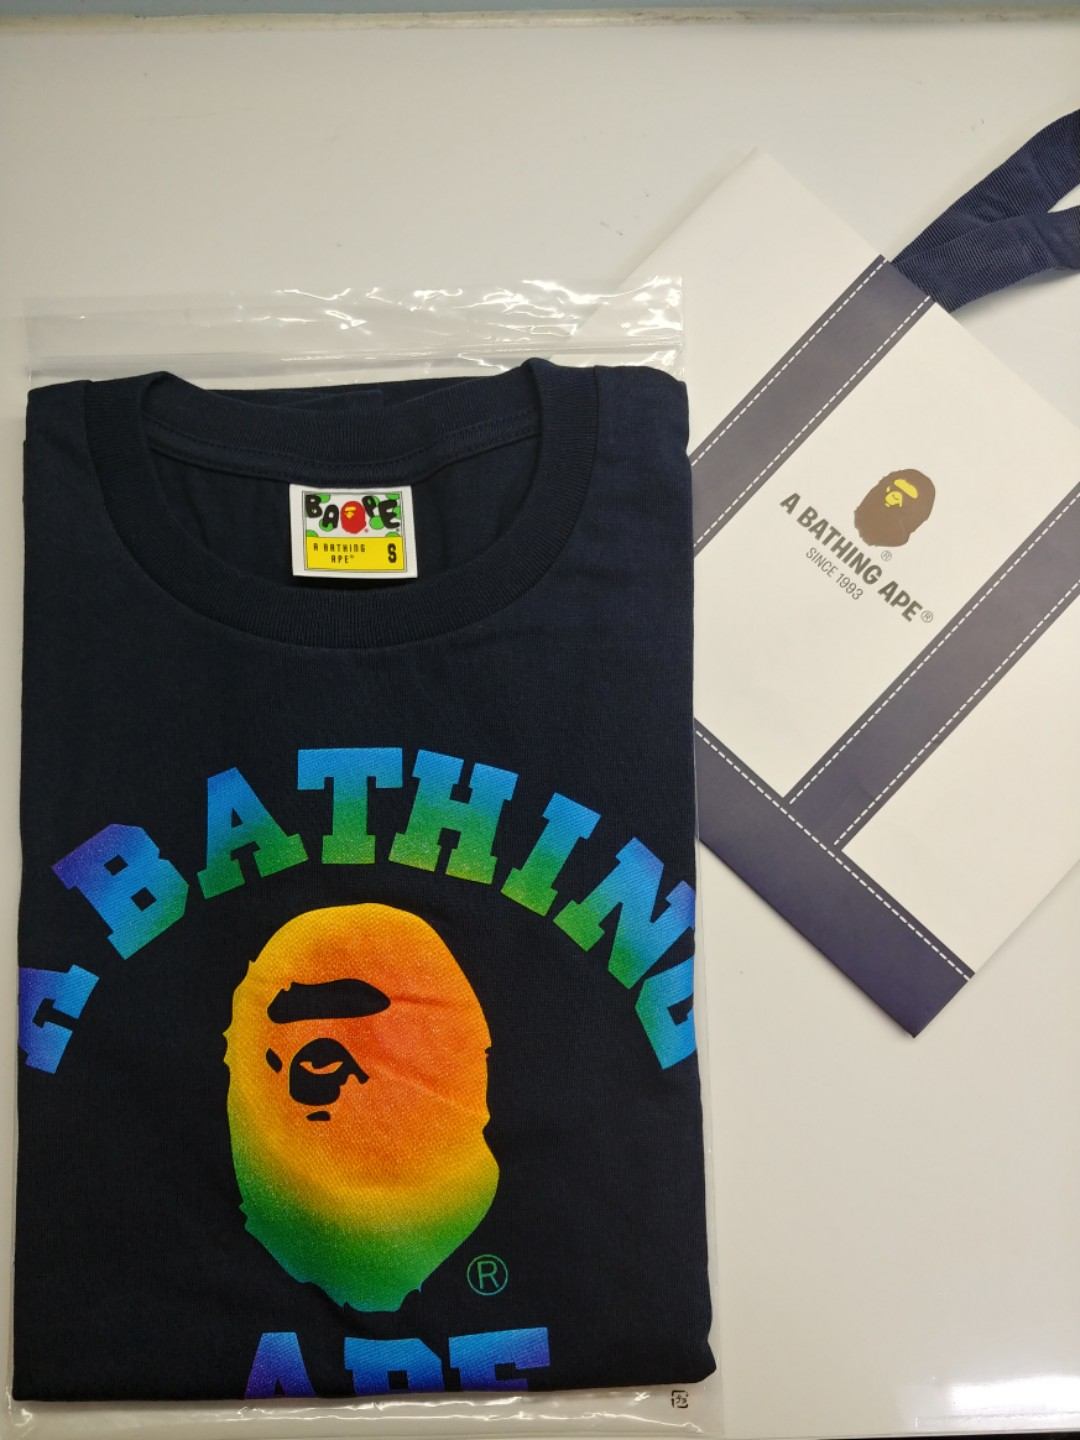 62a69b09 Bape Black Rainbow College Tee, Men's Fashion, Clothes, Tops on ...